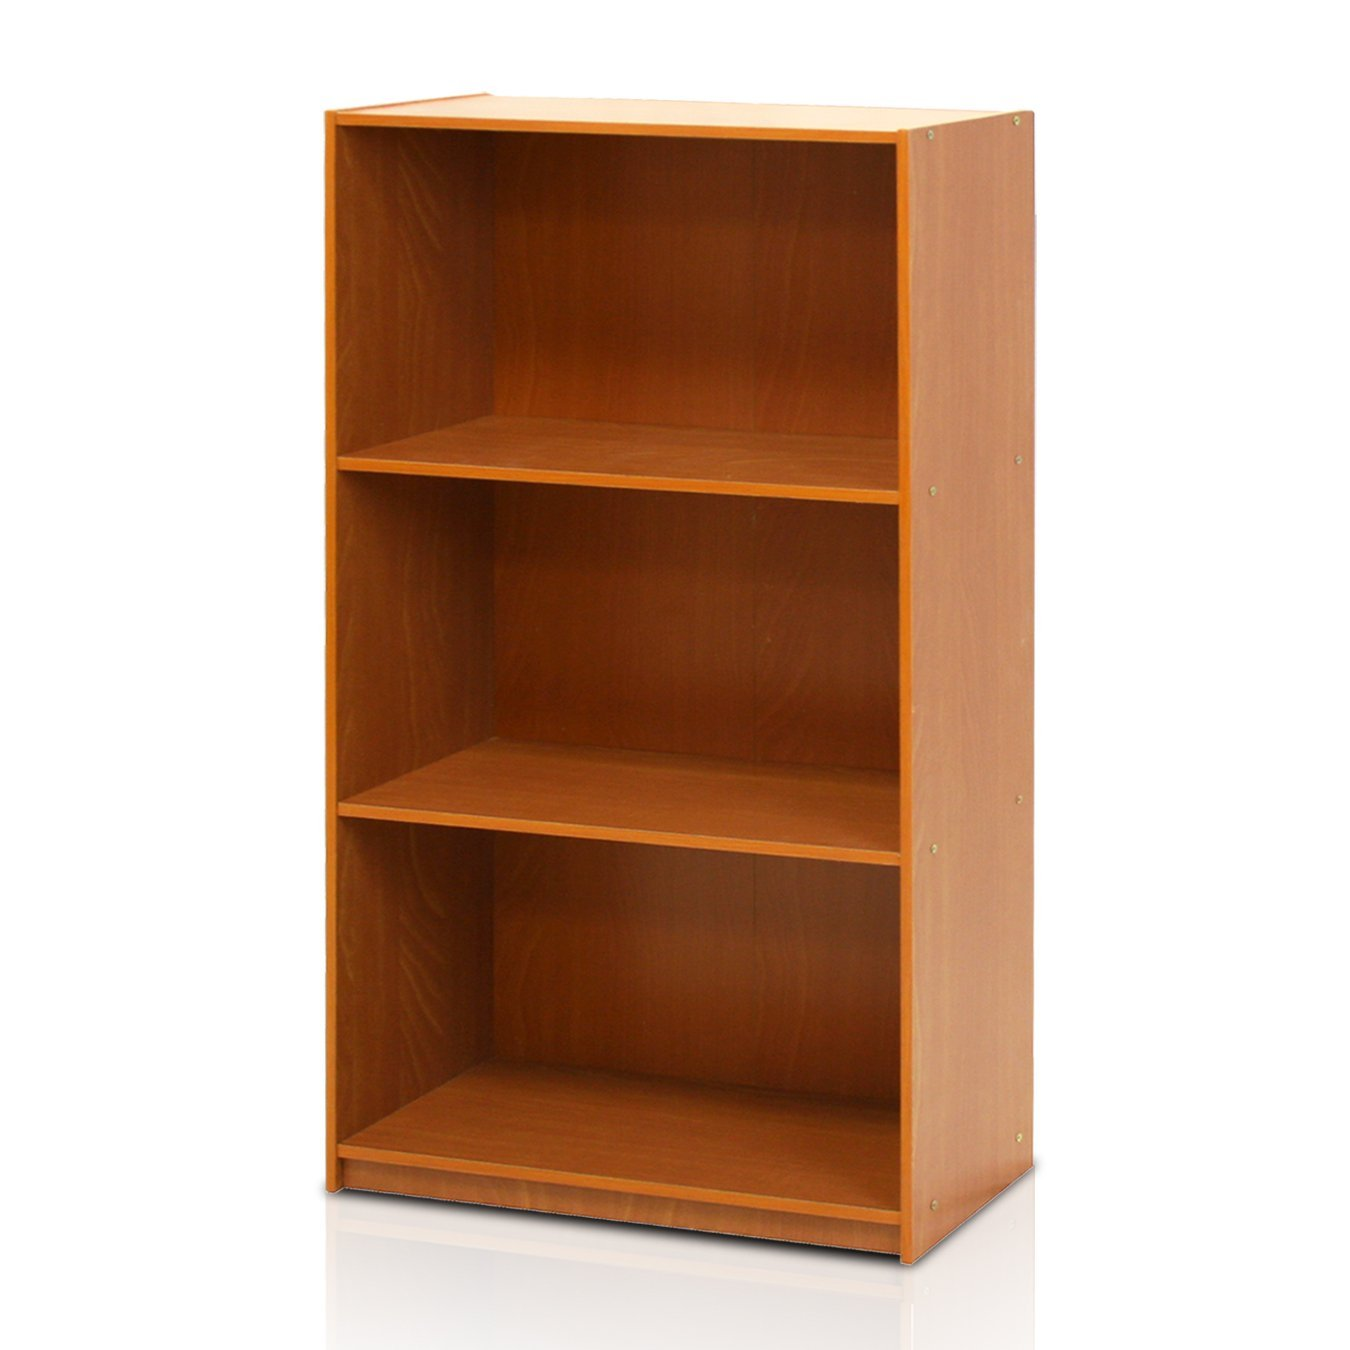 Buy Furinno Small Cherry Storage Bookcase With Shelves